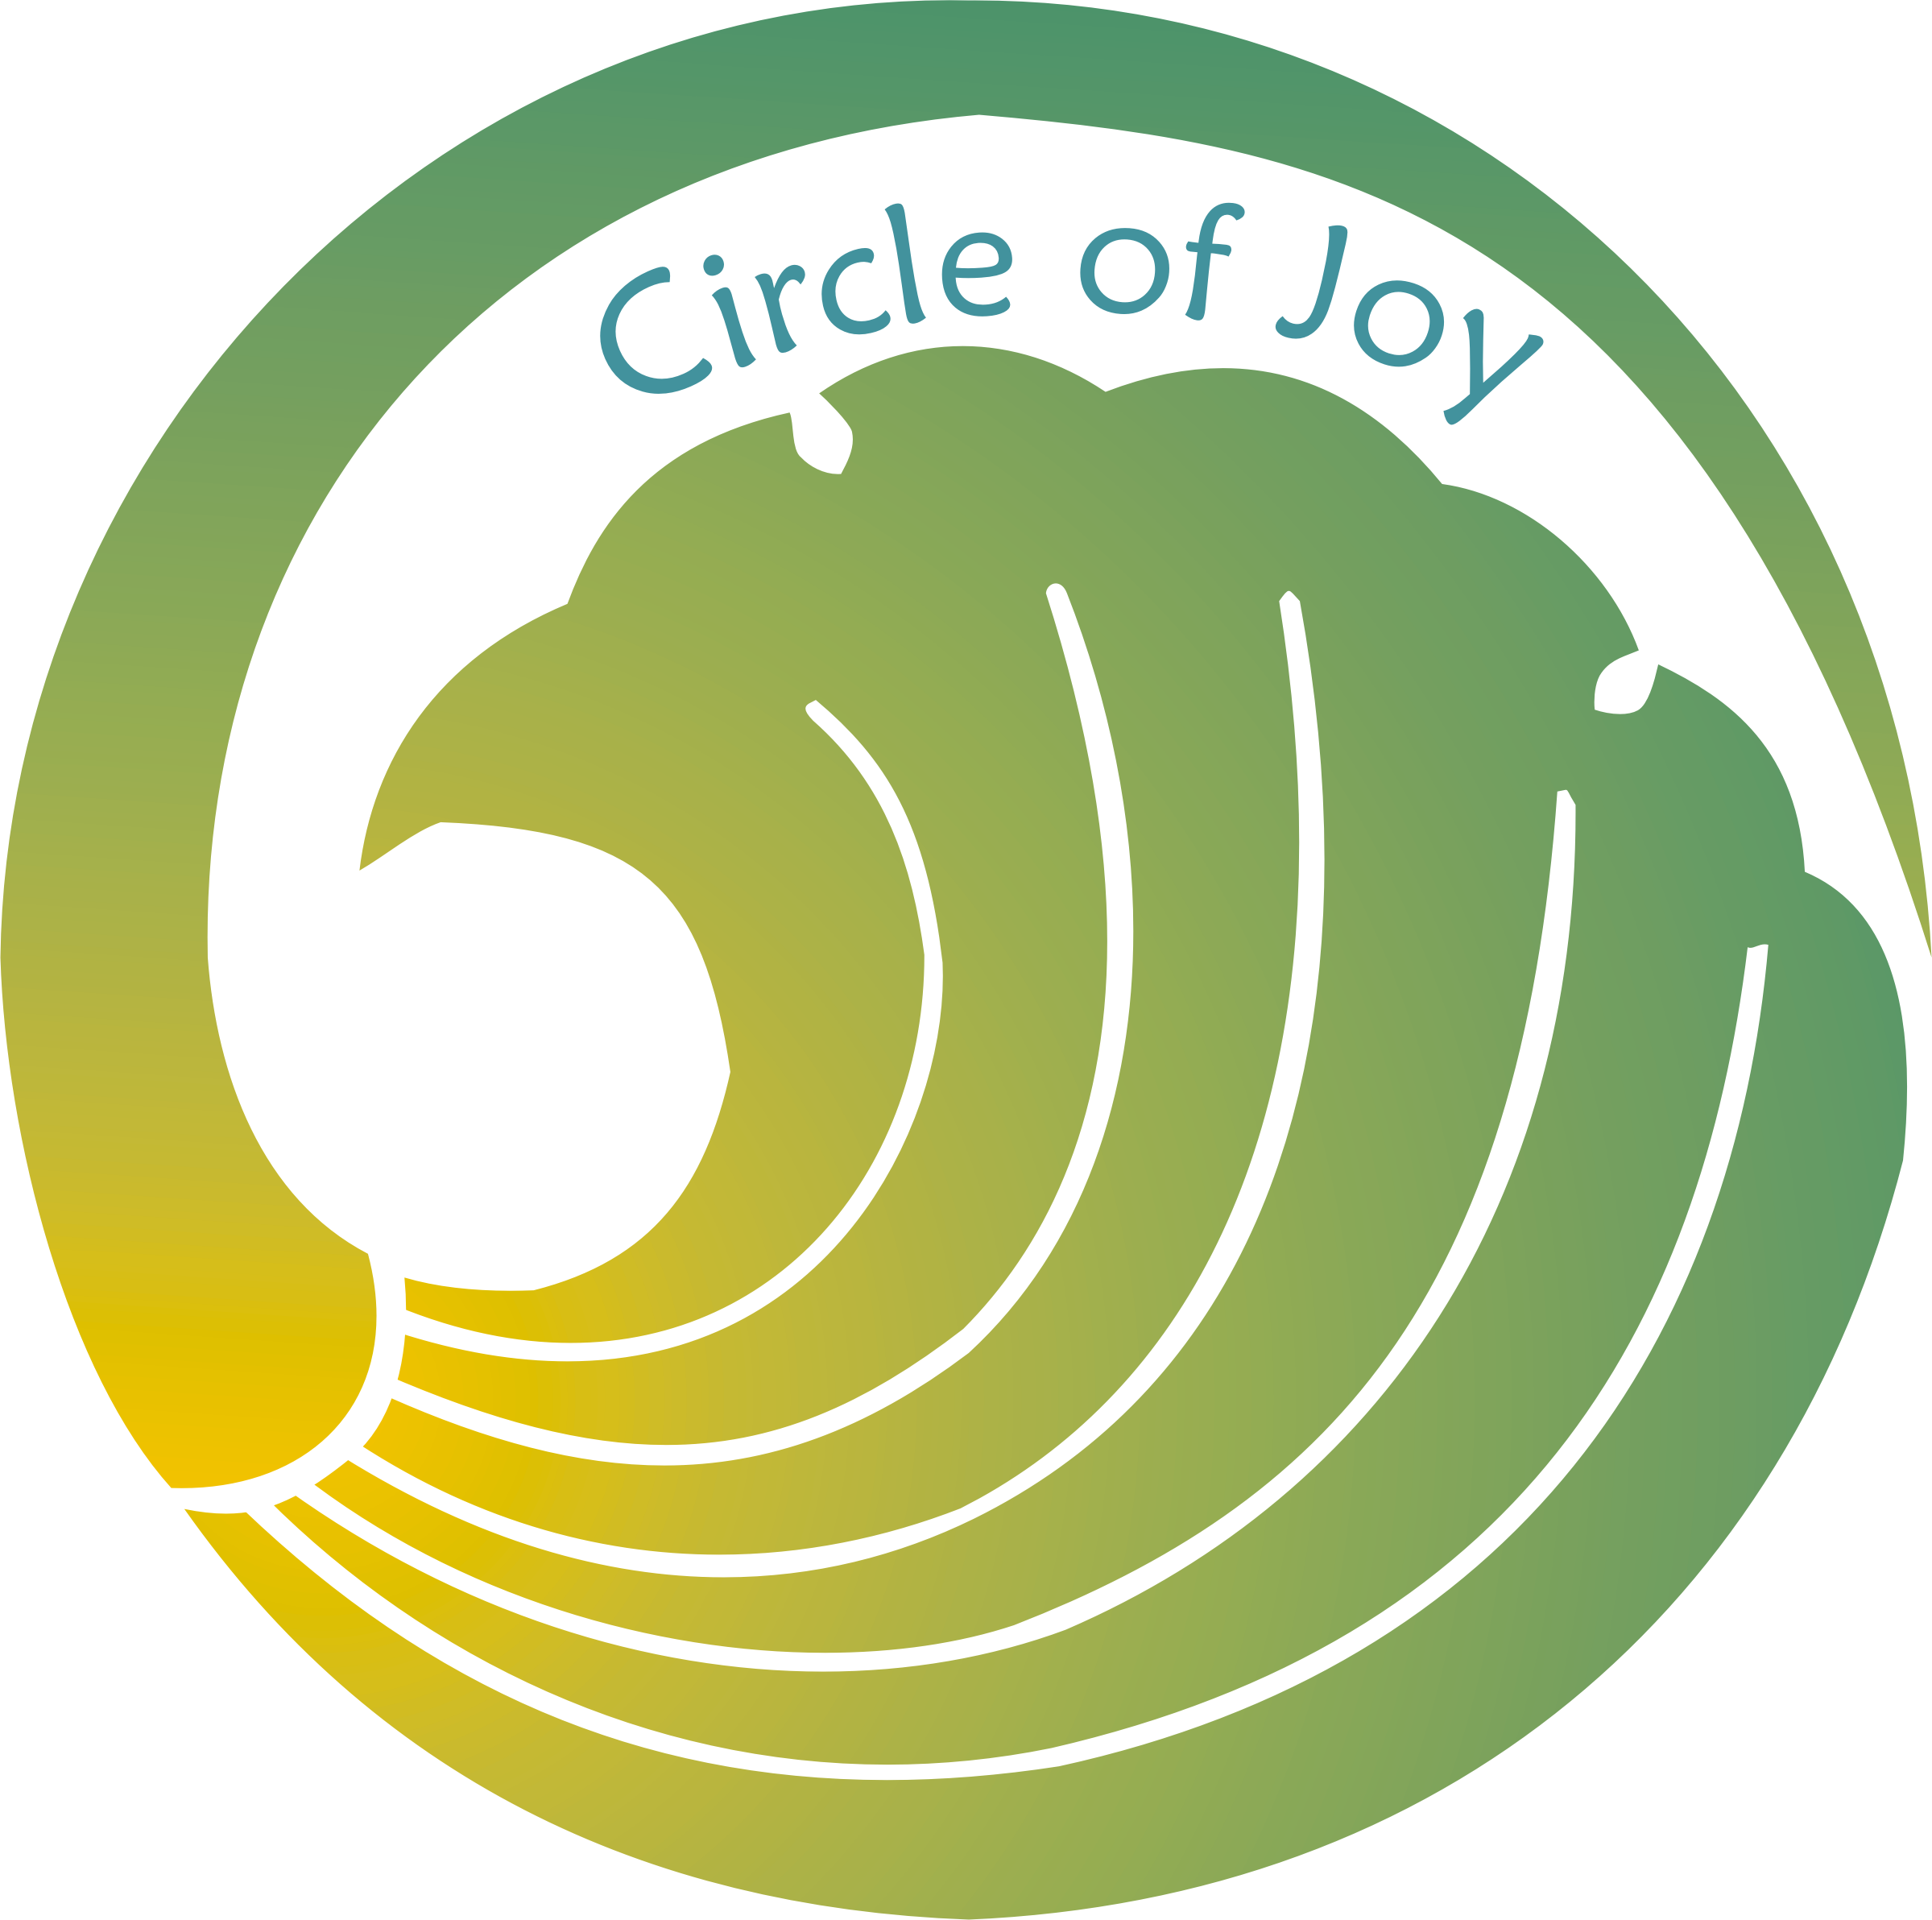 Circle of joy graphic